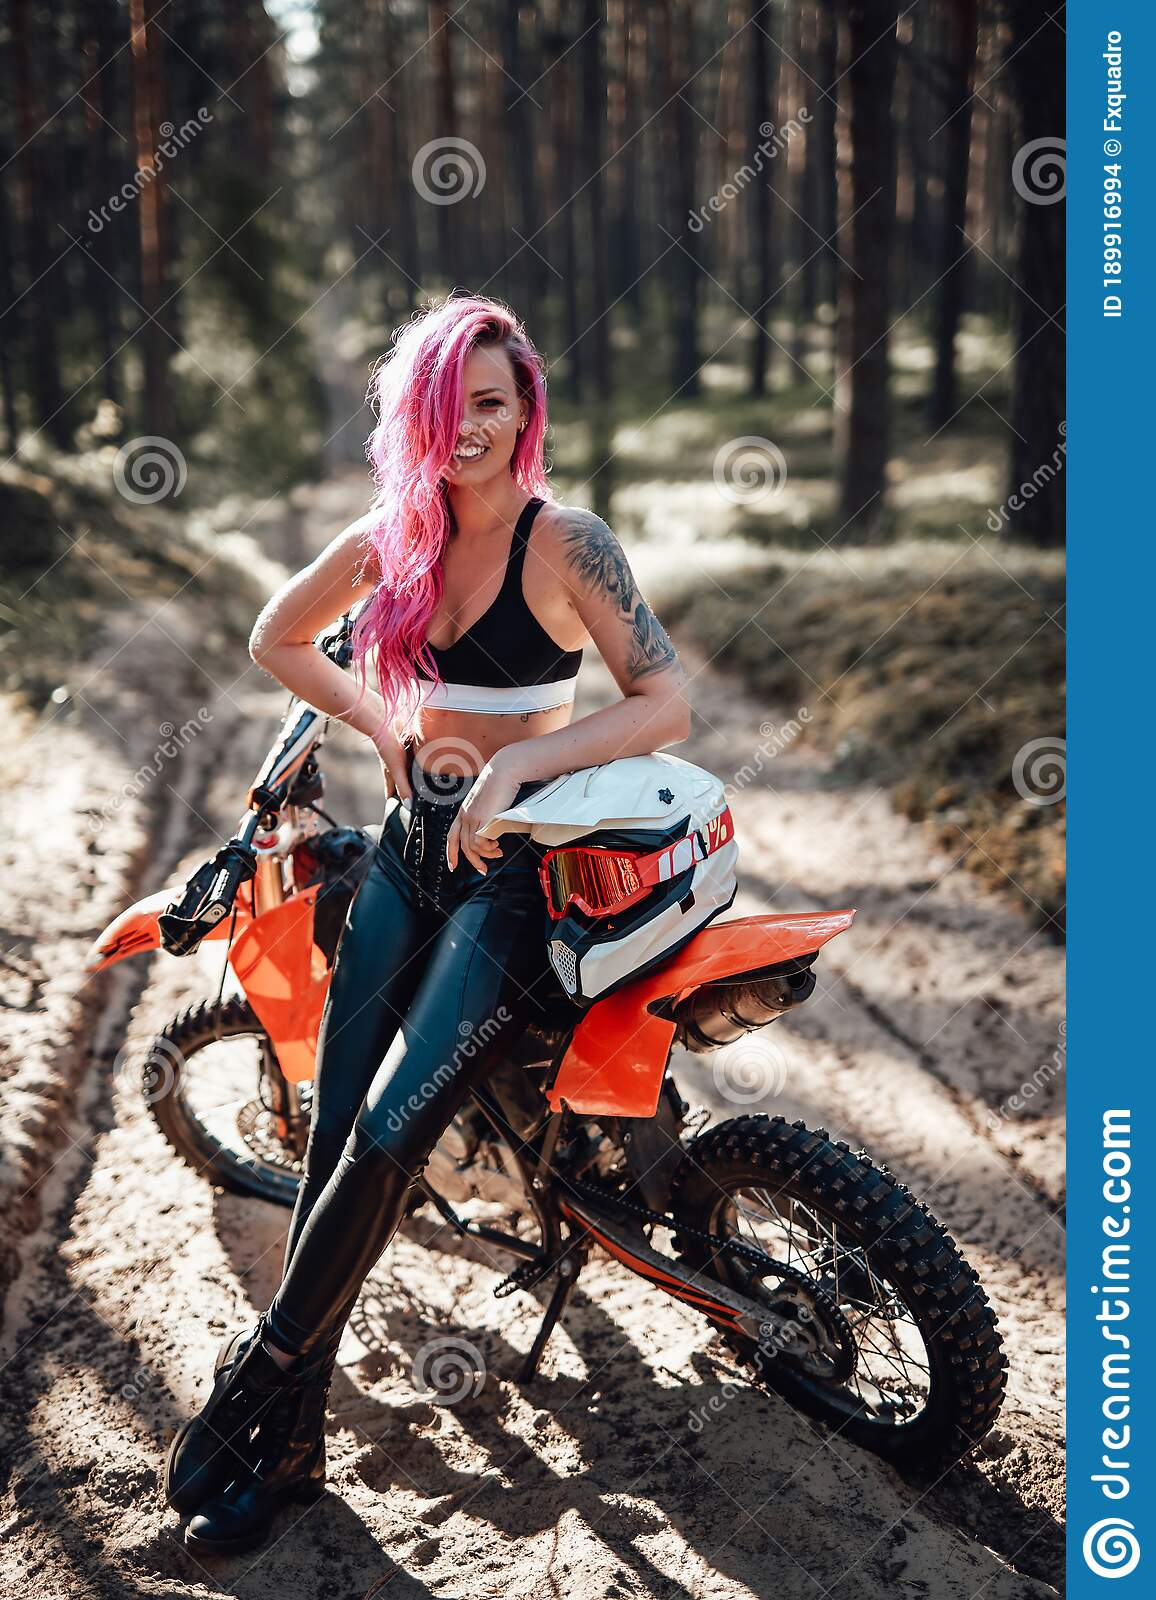 Smiling Young Woman With Pink Hair And Tattoo On Hand Sitting On Her Modern Motocross Bike In Woods Stock Photo Image Of Enjoying Helmet 189916994